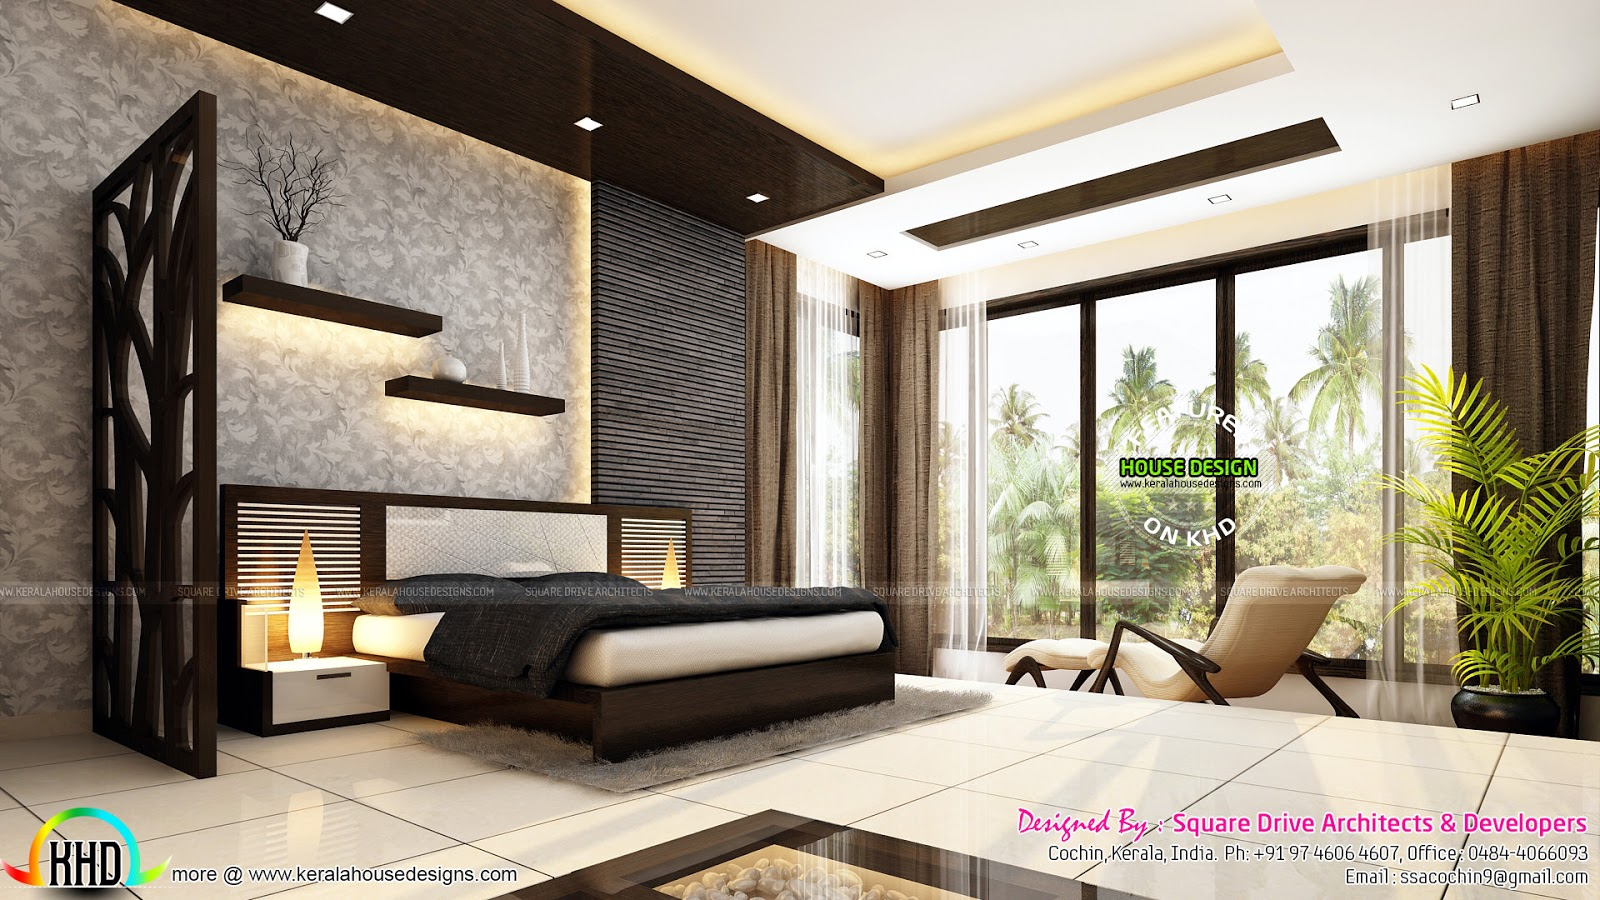 Very beautiful modern interior designs kerala home for Picture of interior designs of house